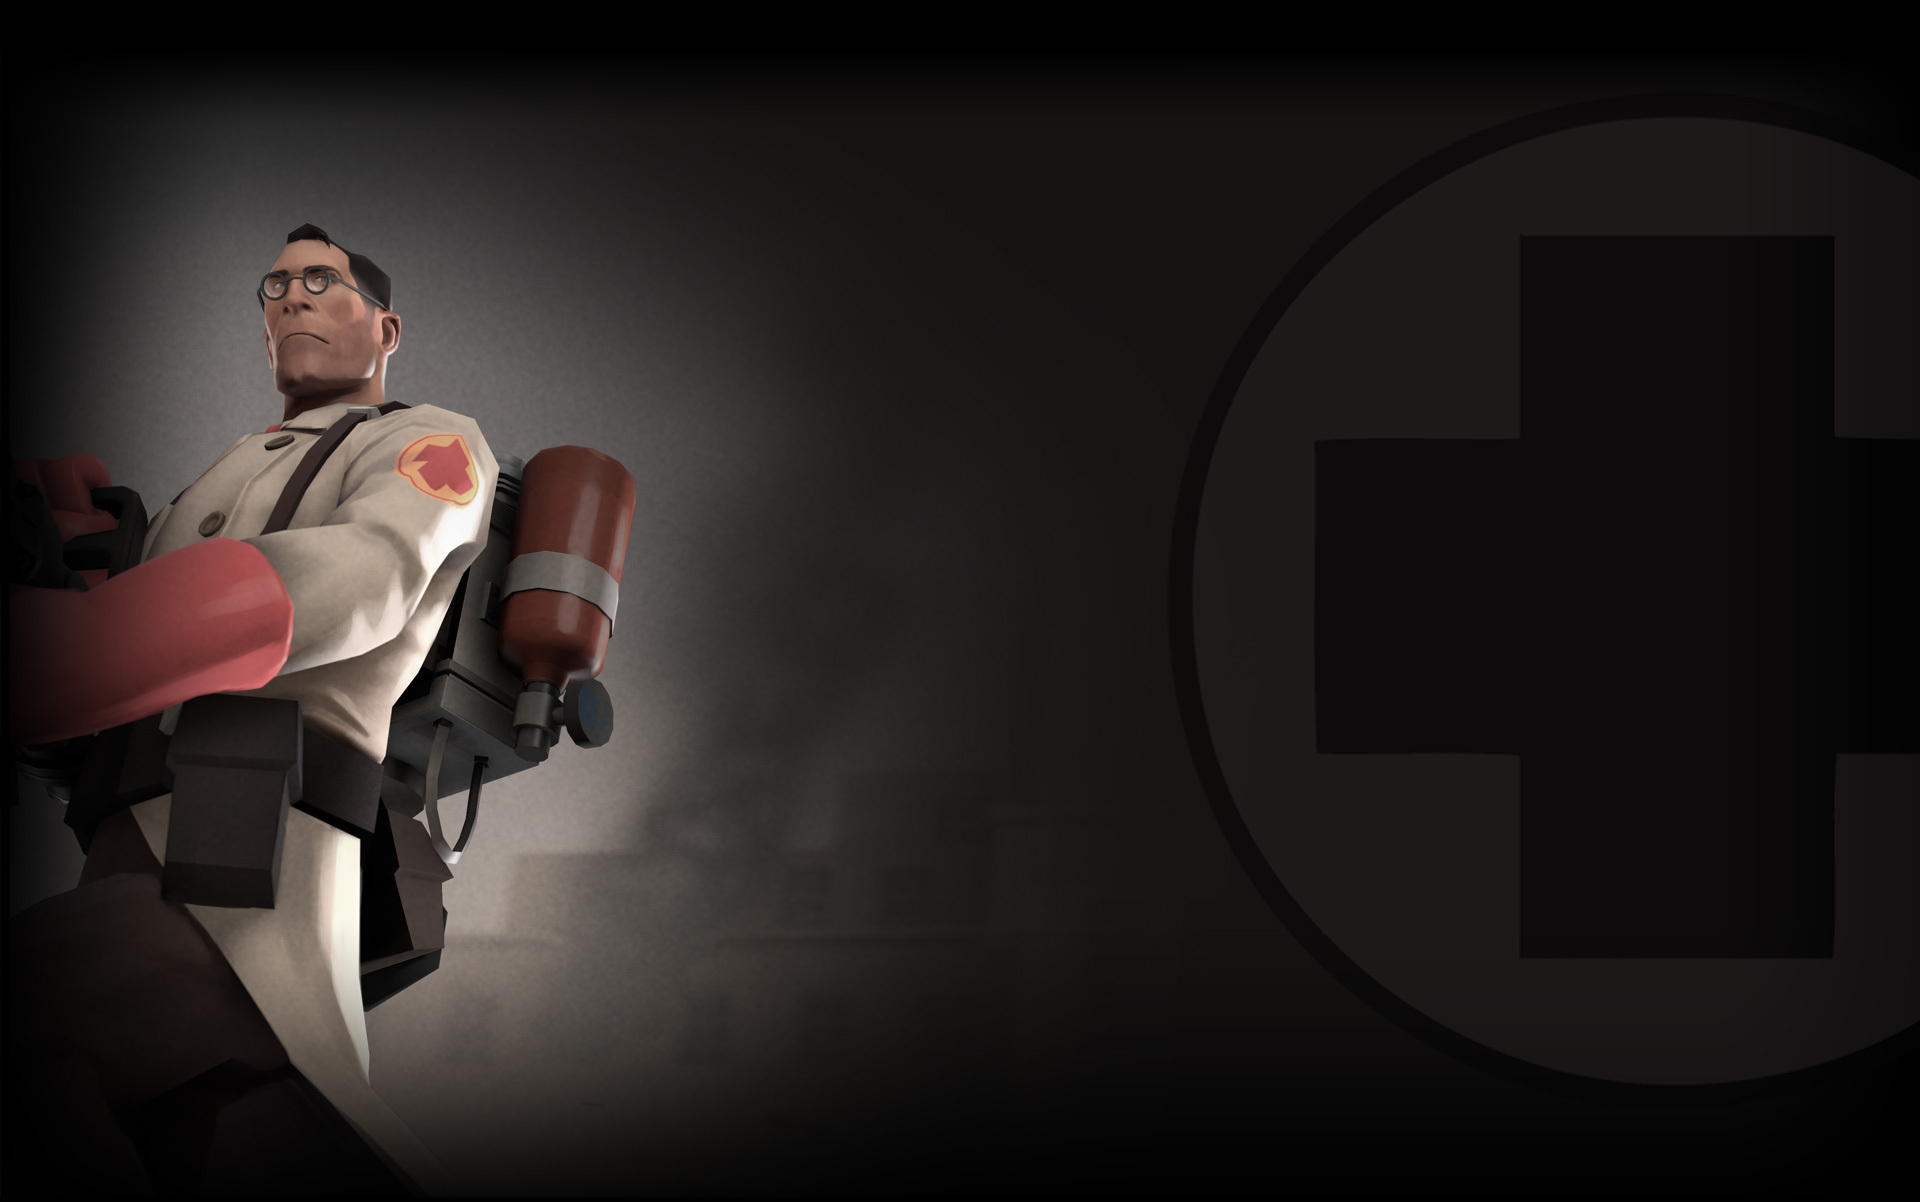 Medic (Profile Background)